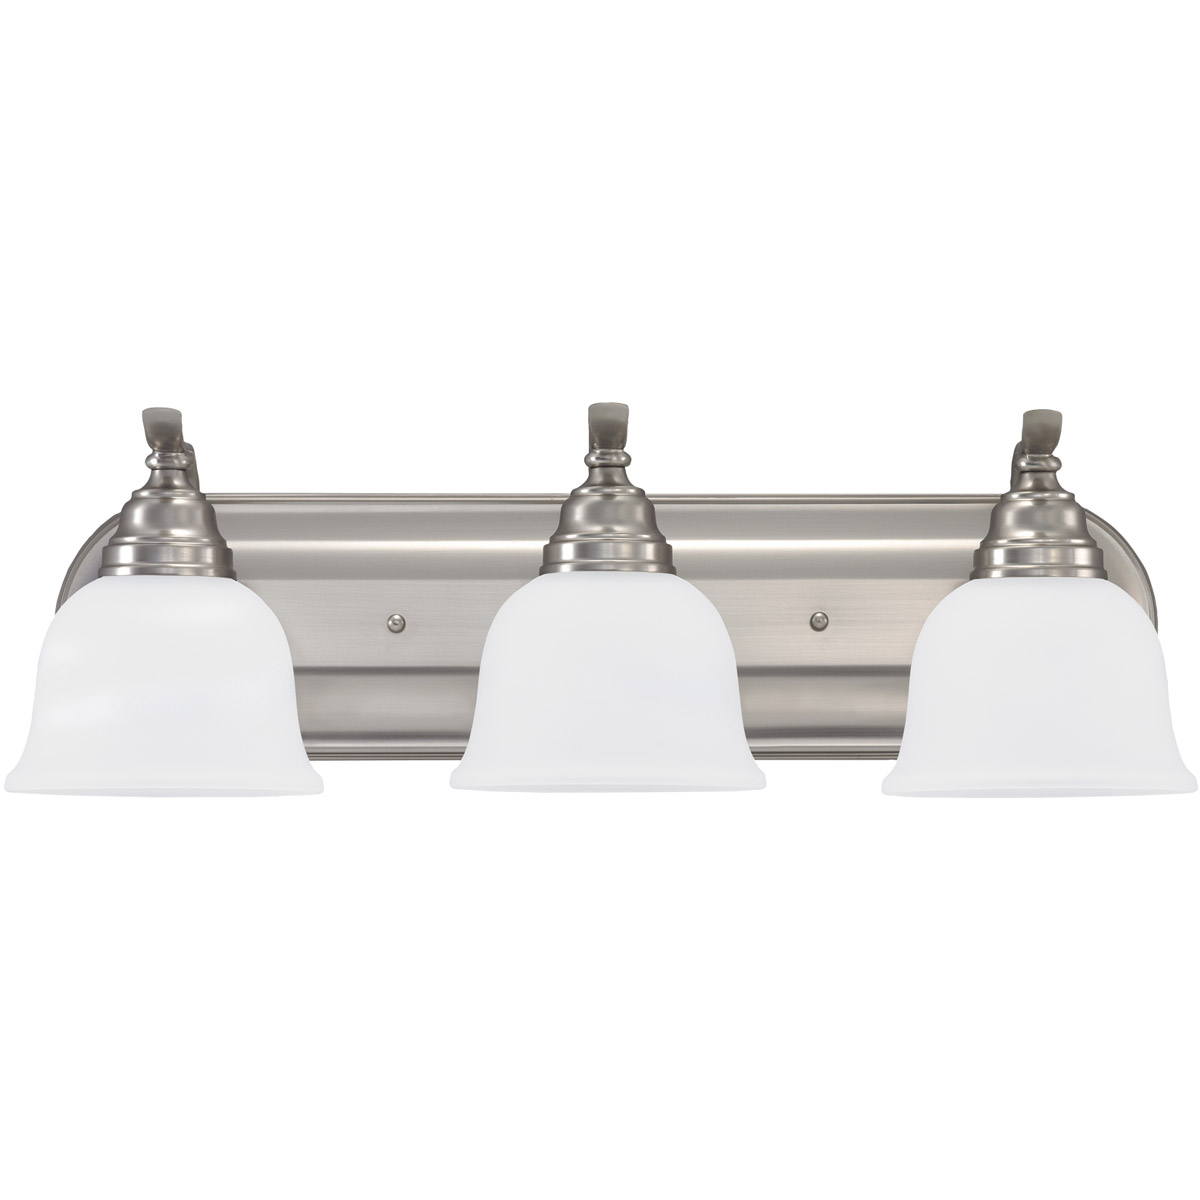 Sea Gull Lighting Wheaton 3 Light Bath Vanity in Brushed Nickel 44627-962